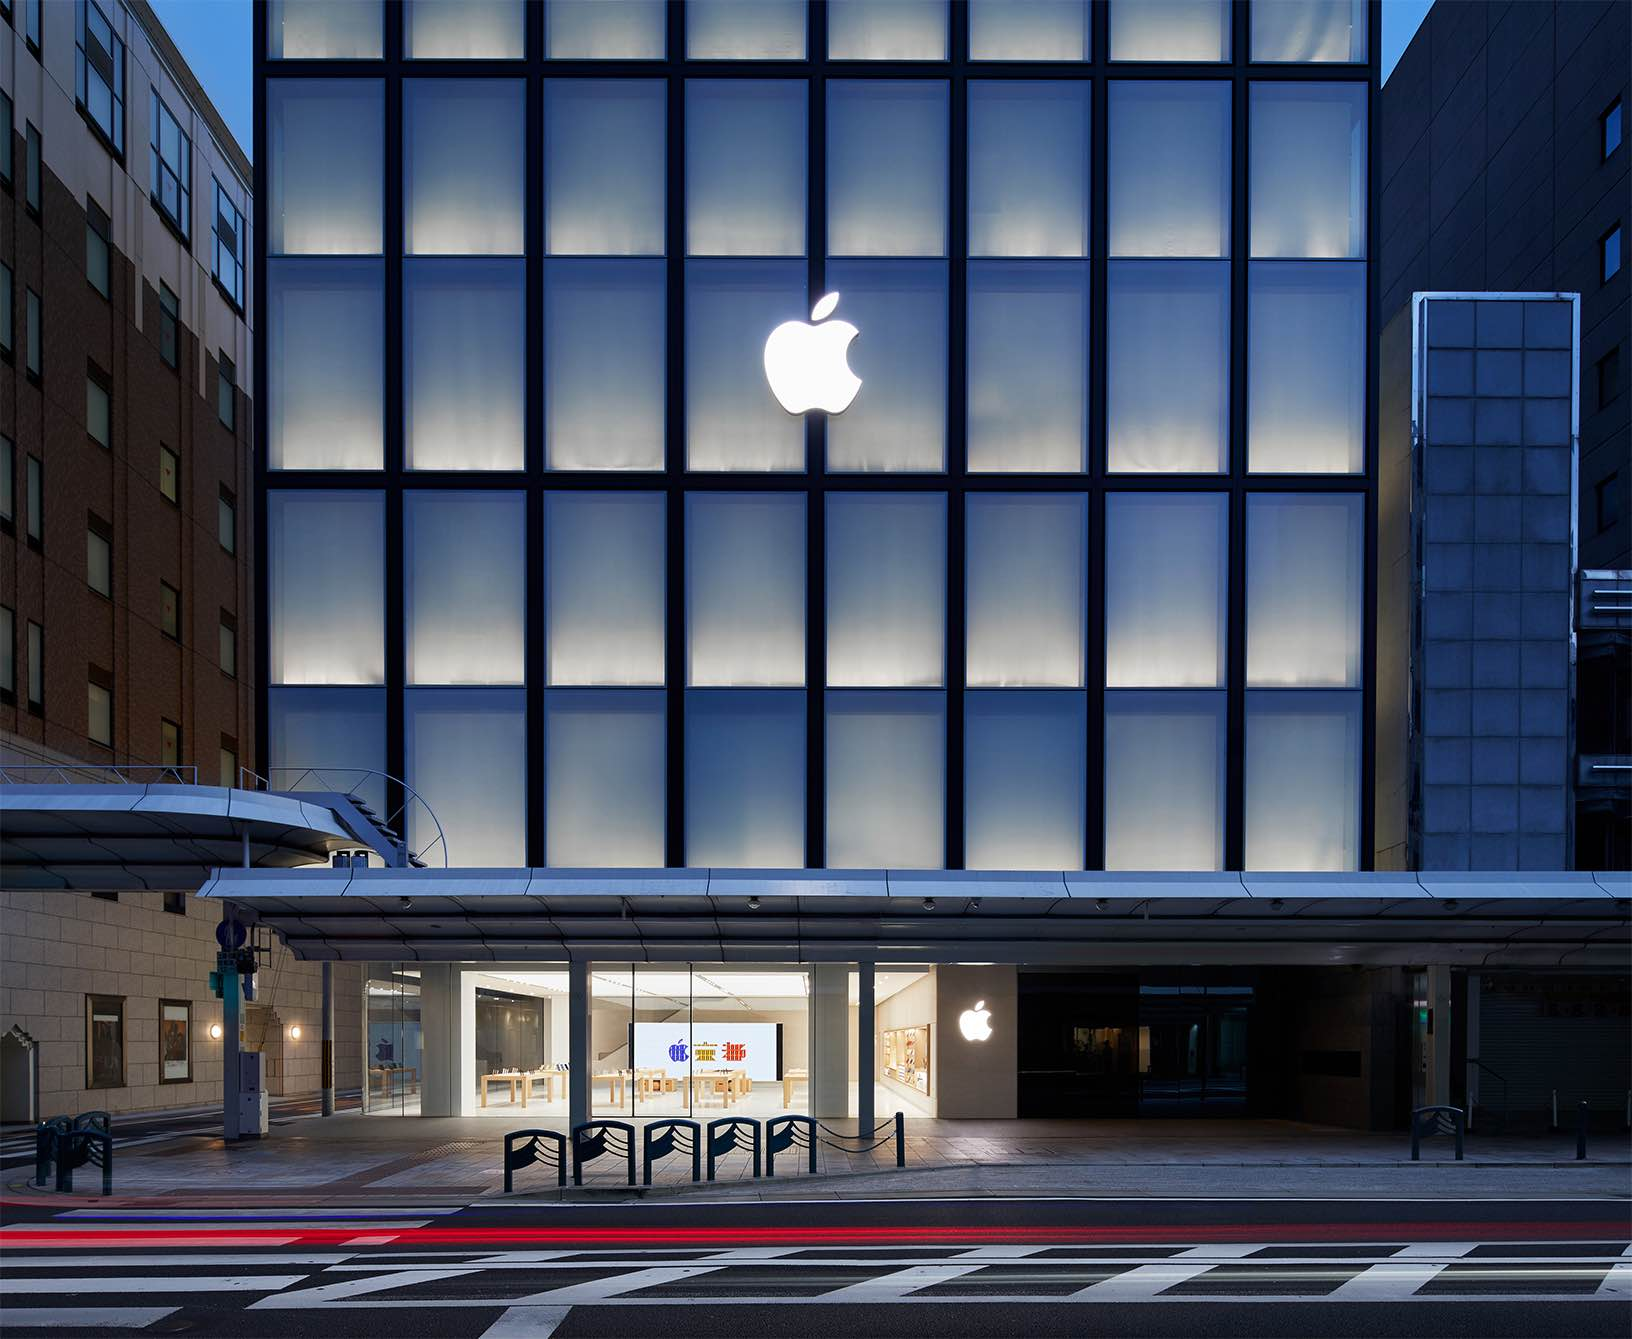 Apple's first store in Japan's Kytoo is located on the Shijō Dori street